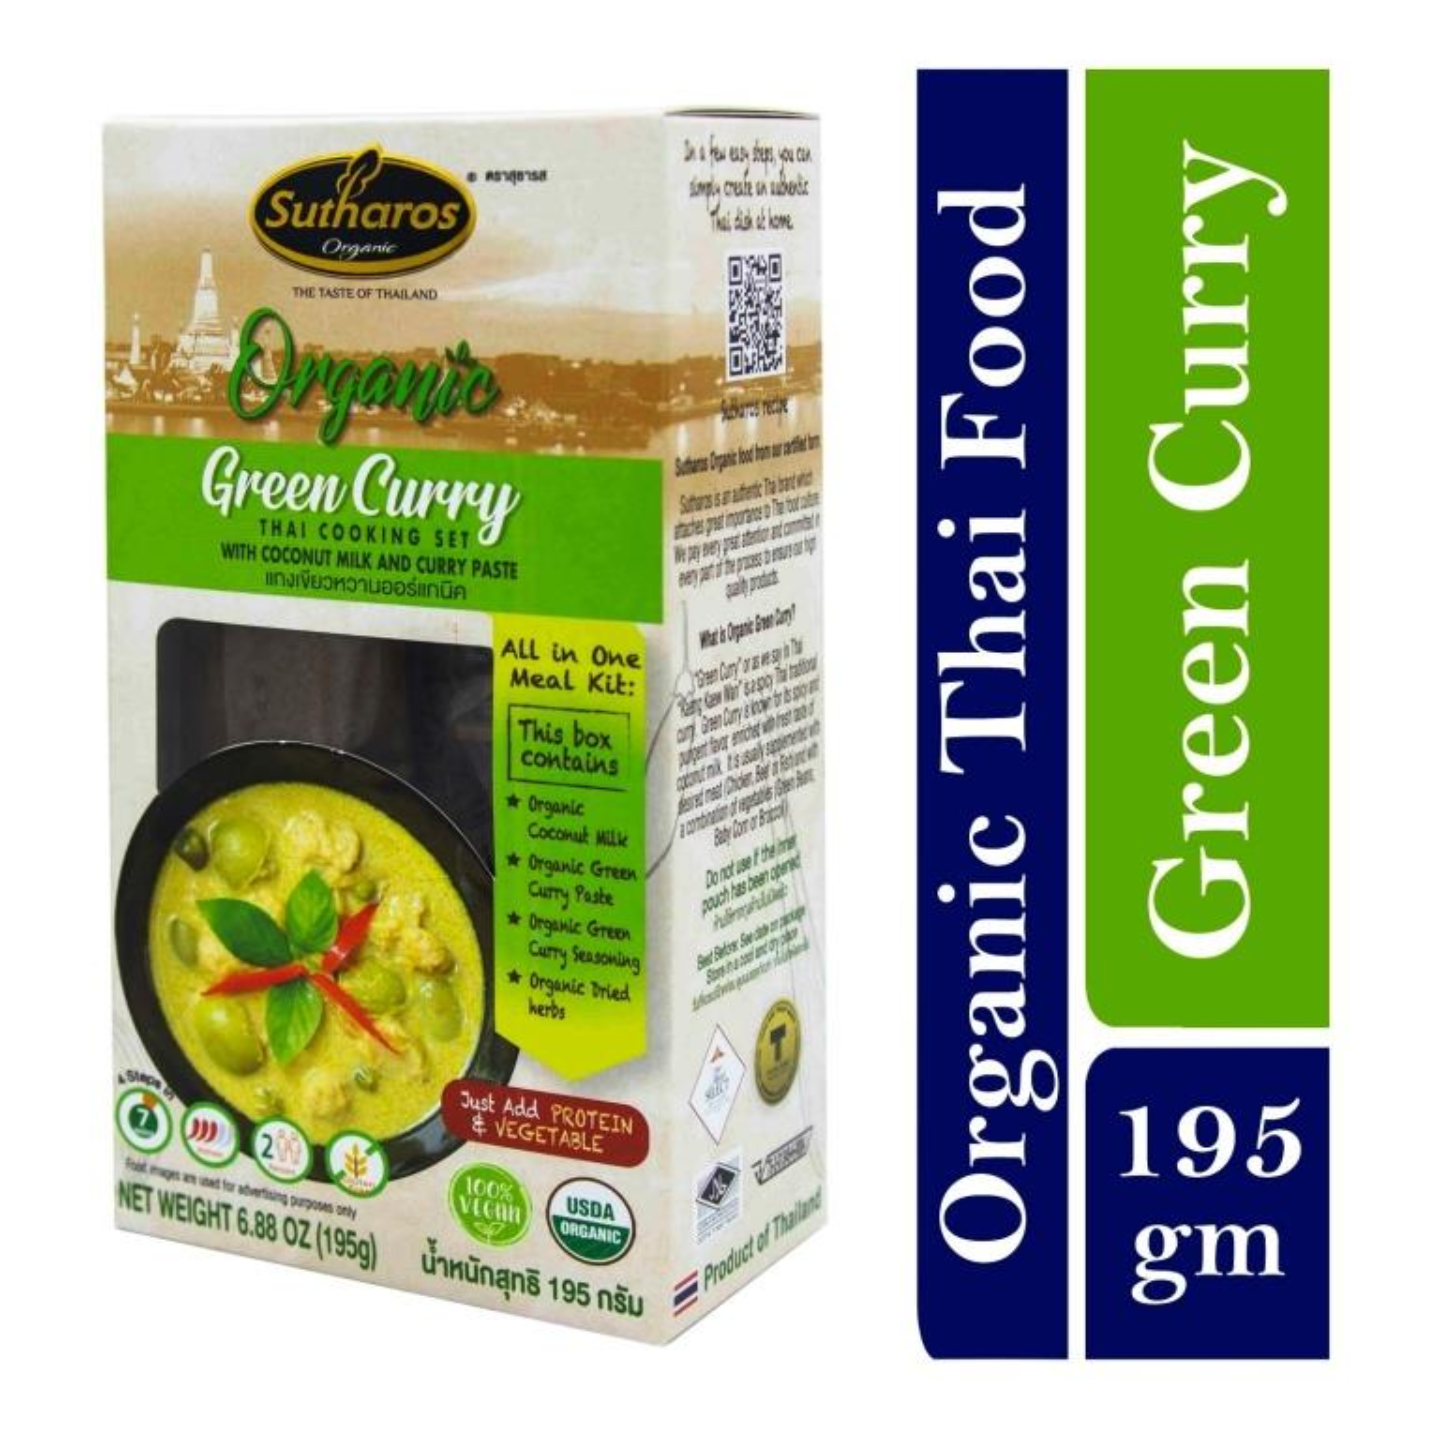 Sutharos Organic Thai Green Curry 1 x 195gm